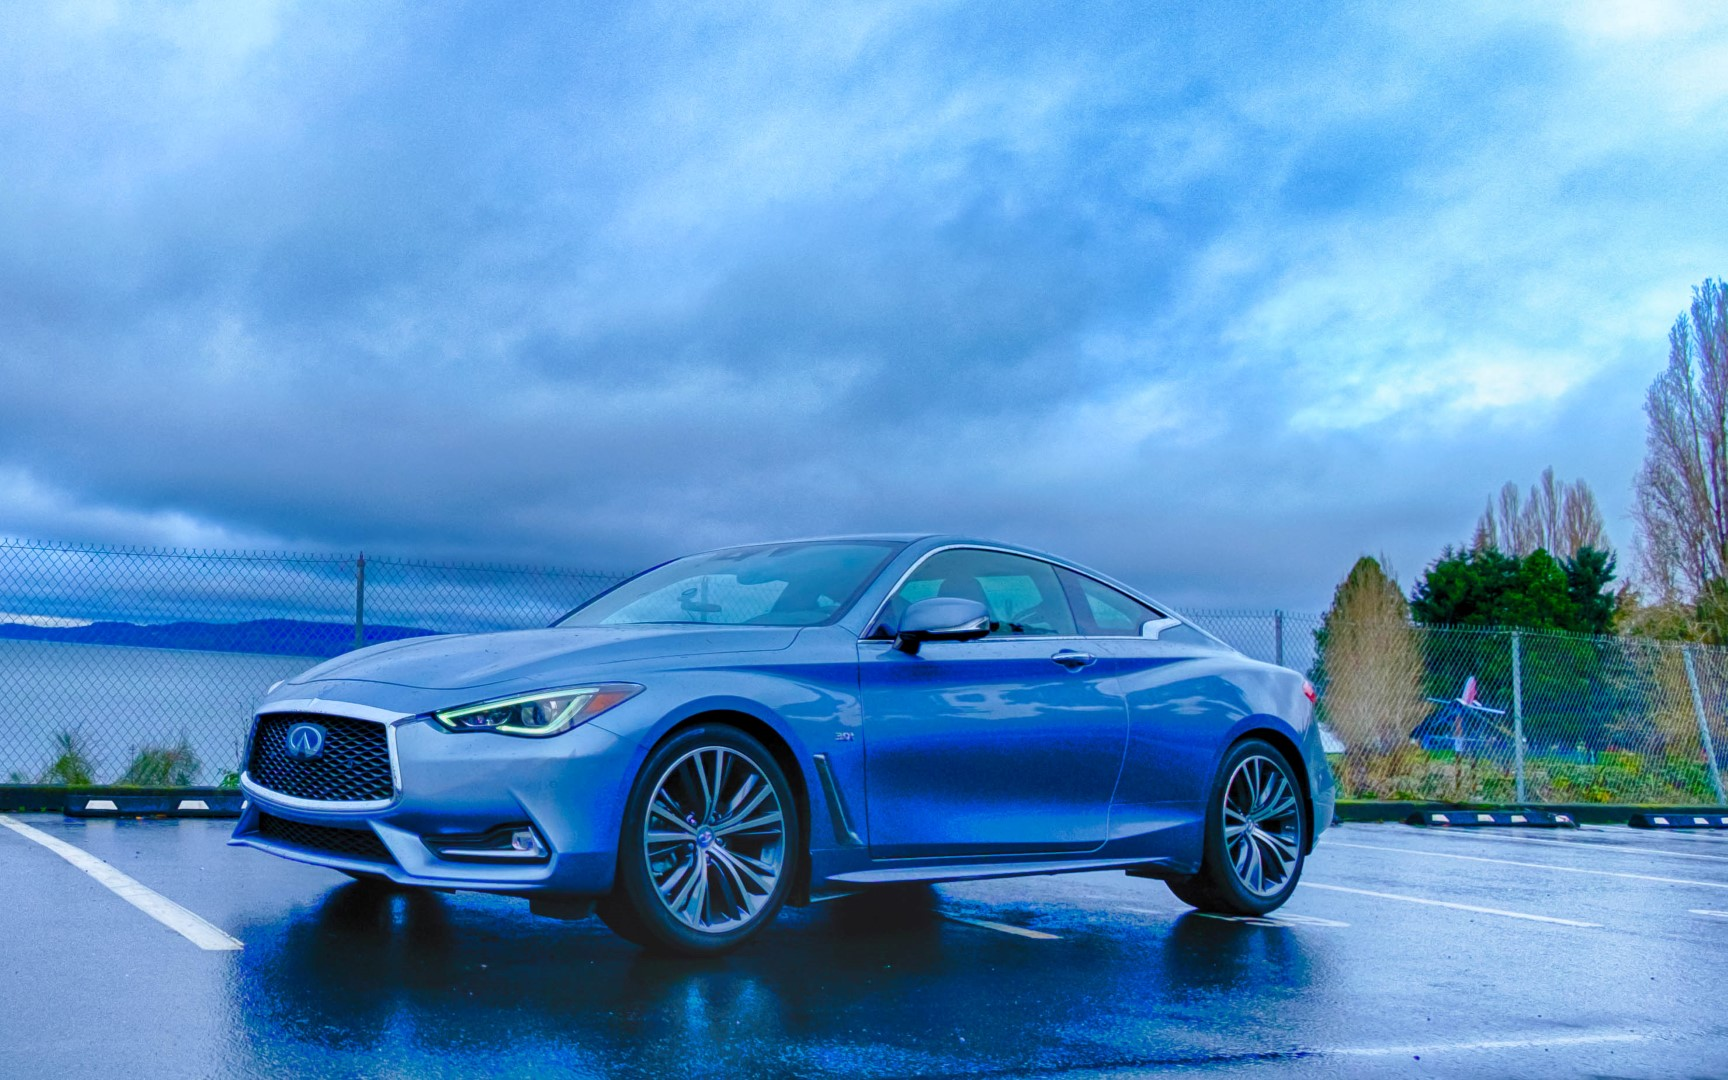 2017 Infiniti Q60 3 0t Premium is underrated, makes 310 hp at the